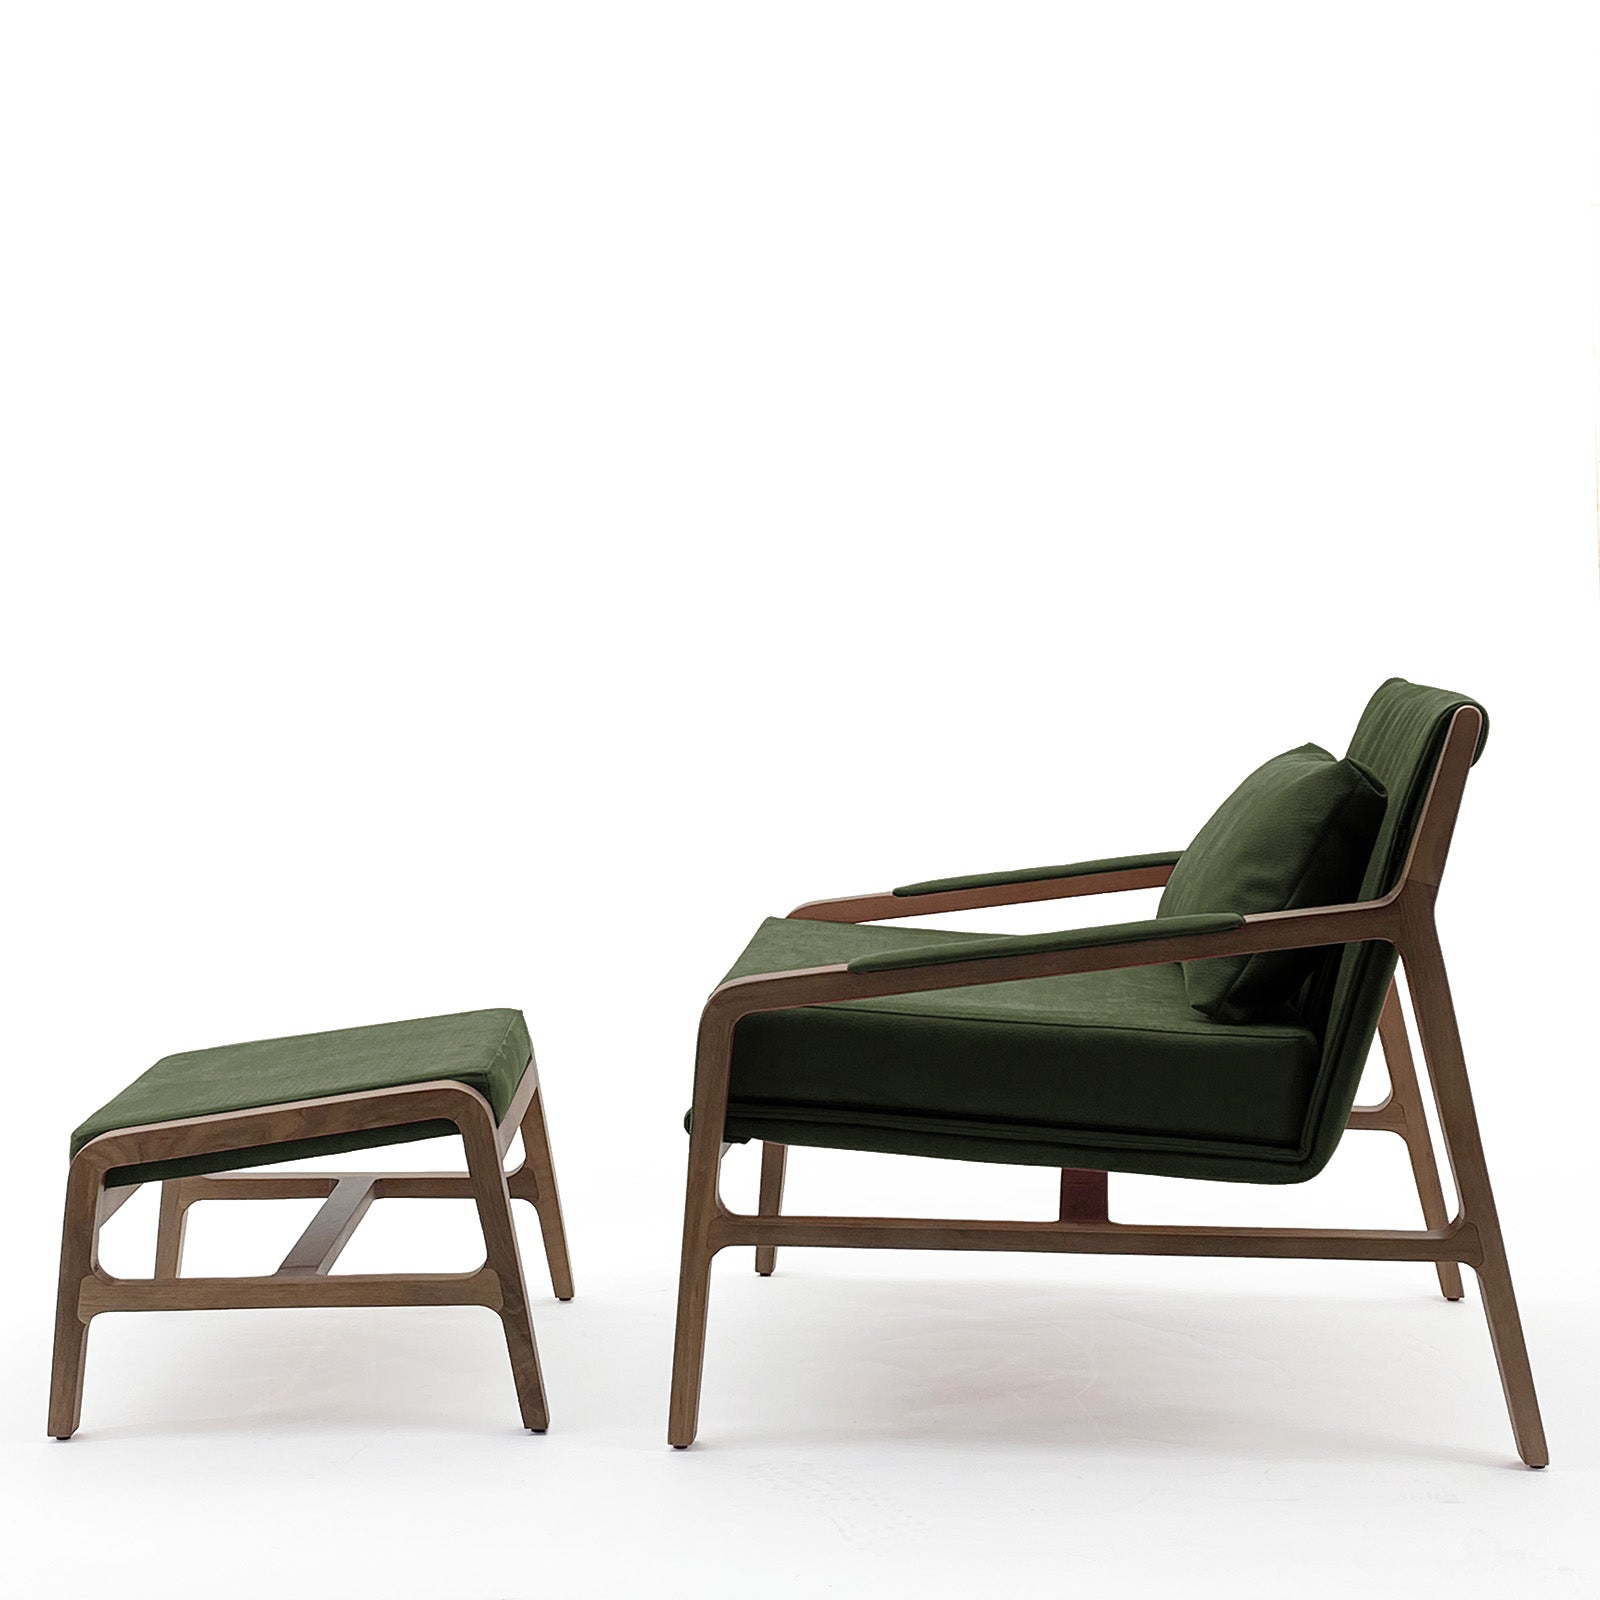 Nordic  solid wood lounge chair and ottoman   Nordic-001-GREEN(ROSE Berger)